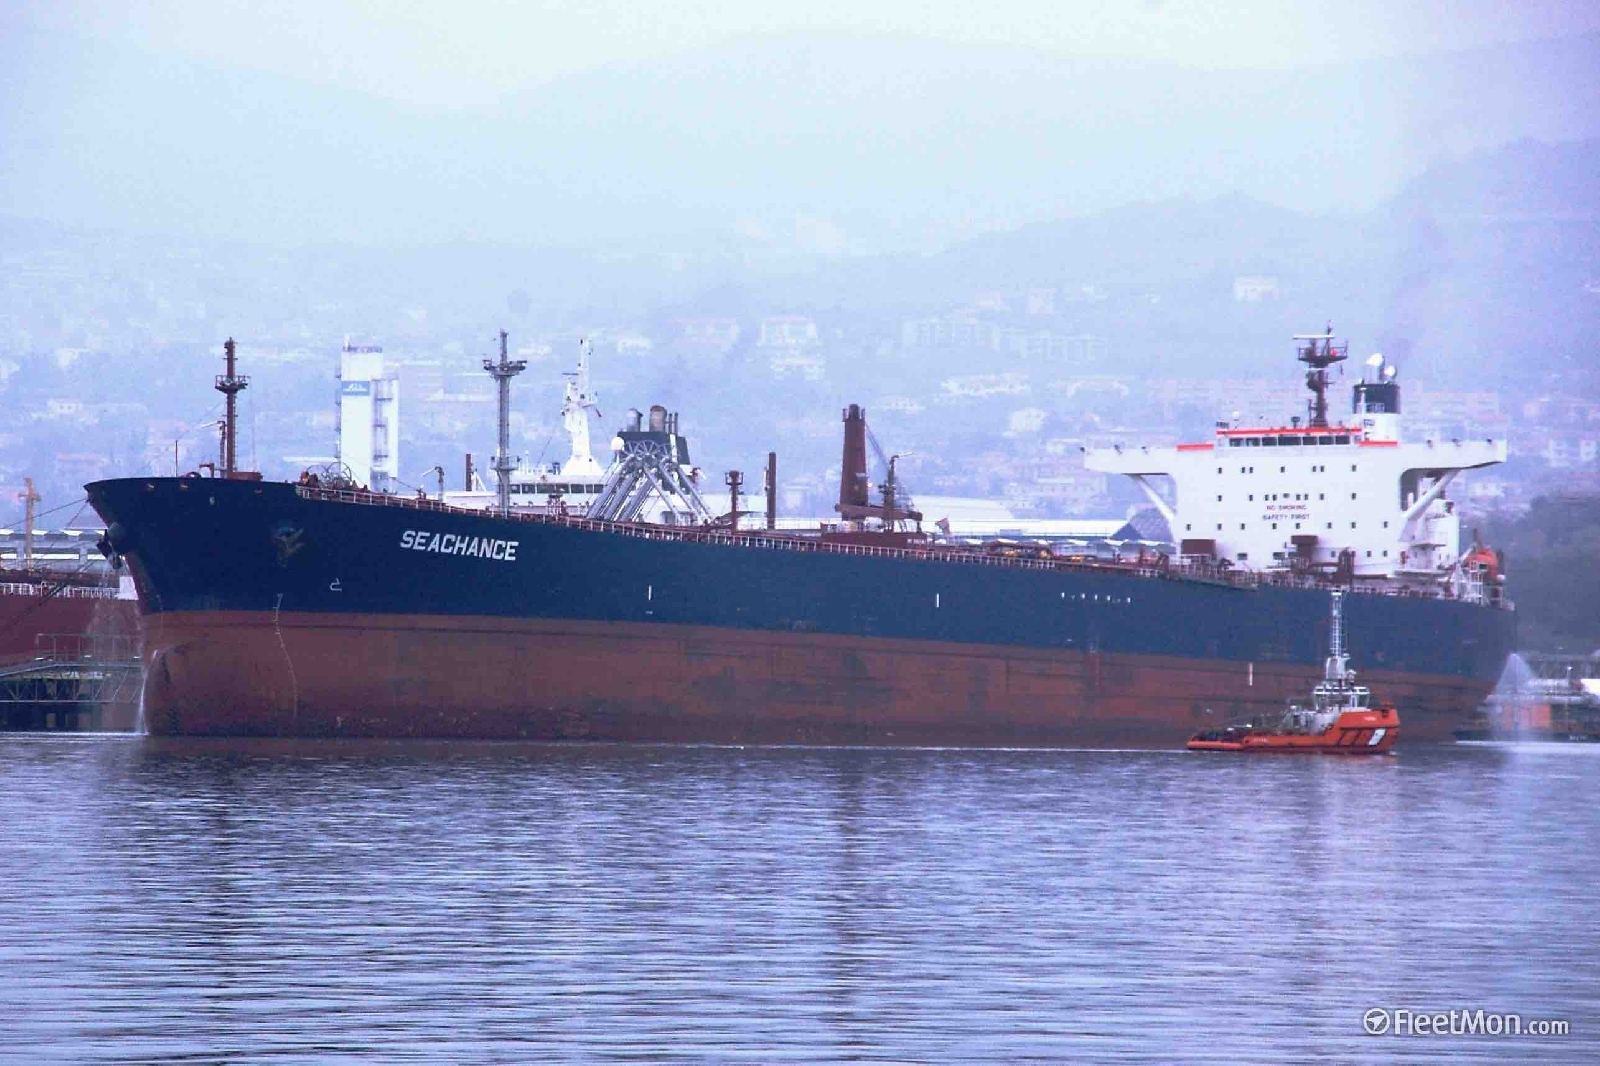 Maltese-flagged tanker stopped from loading at oil export terminal in Libya